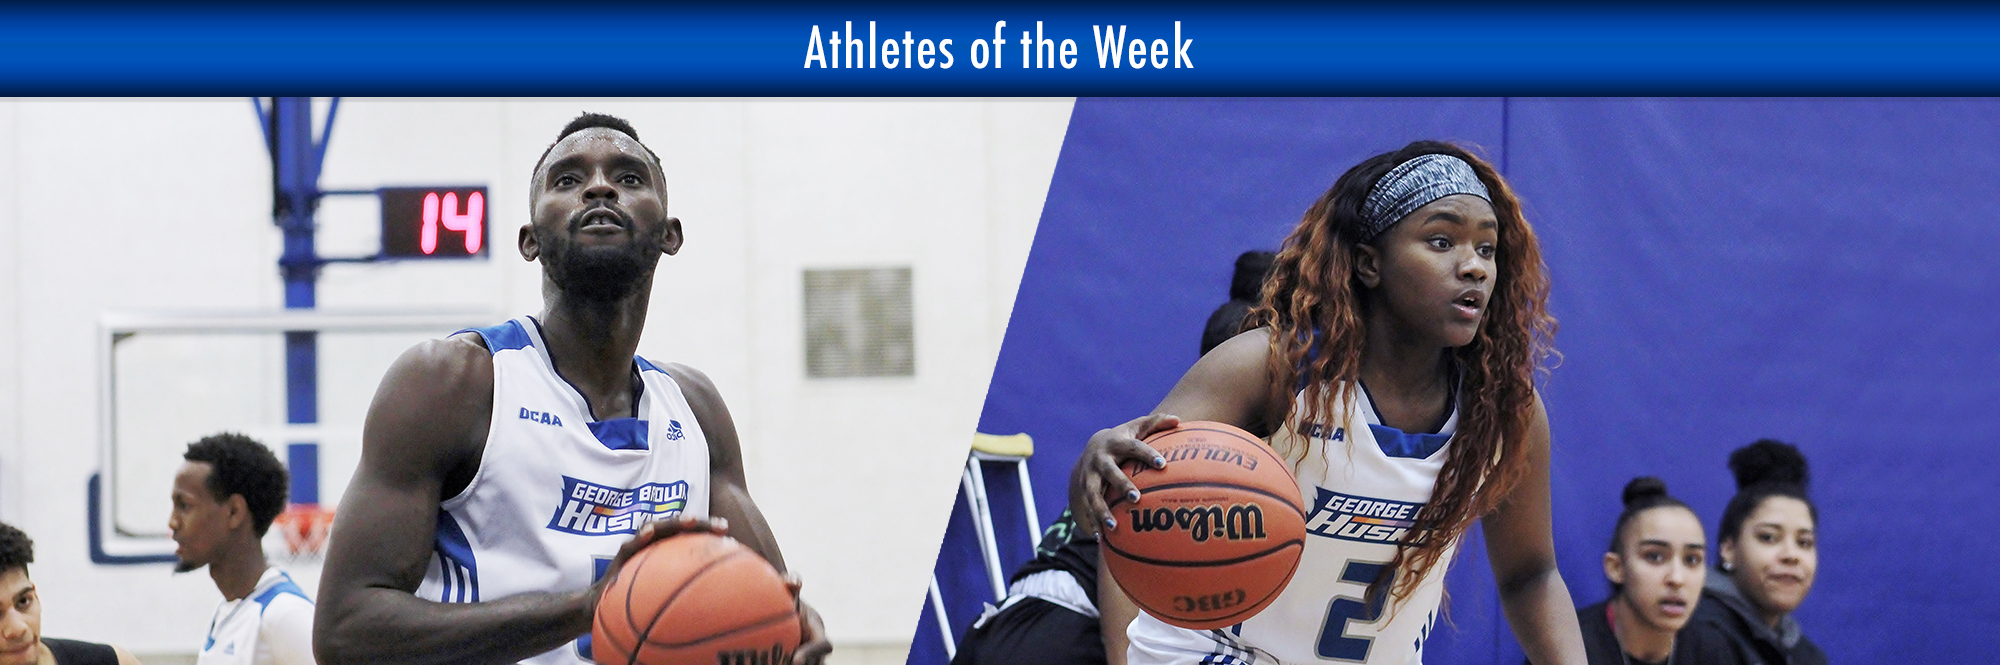 ZAE SELLERS, KINGSLEE D'SILVA NAMED HUSKIES ATHLETES OF THE WEEK